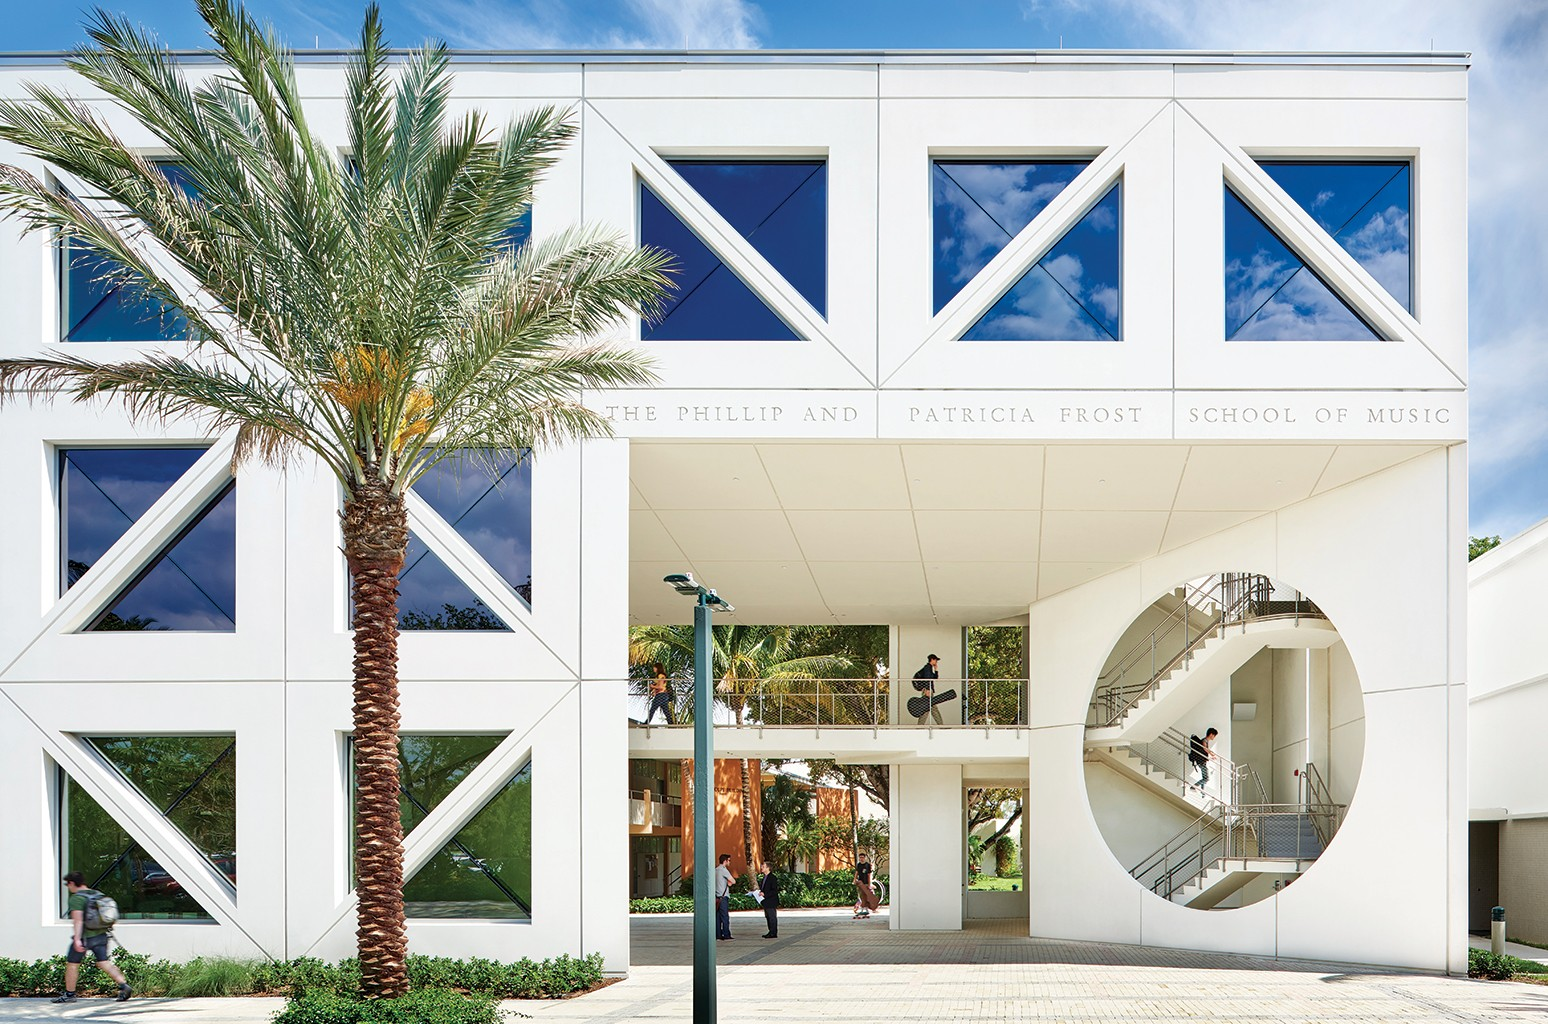 The Frost School of Music at the University of Miami opened a new building in 2015 with an environmentally friendly design.